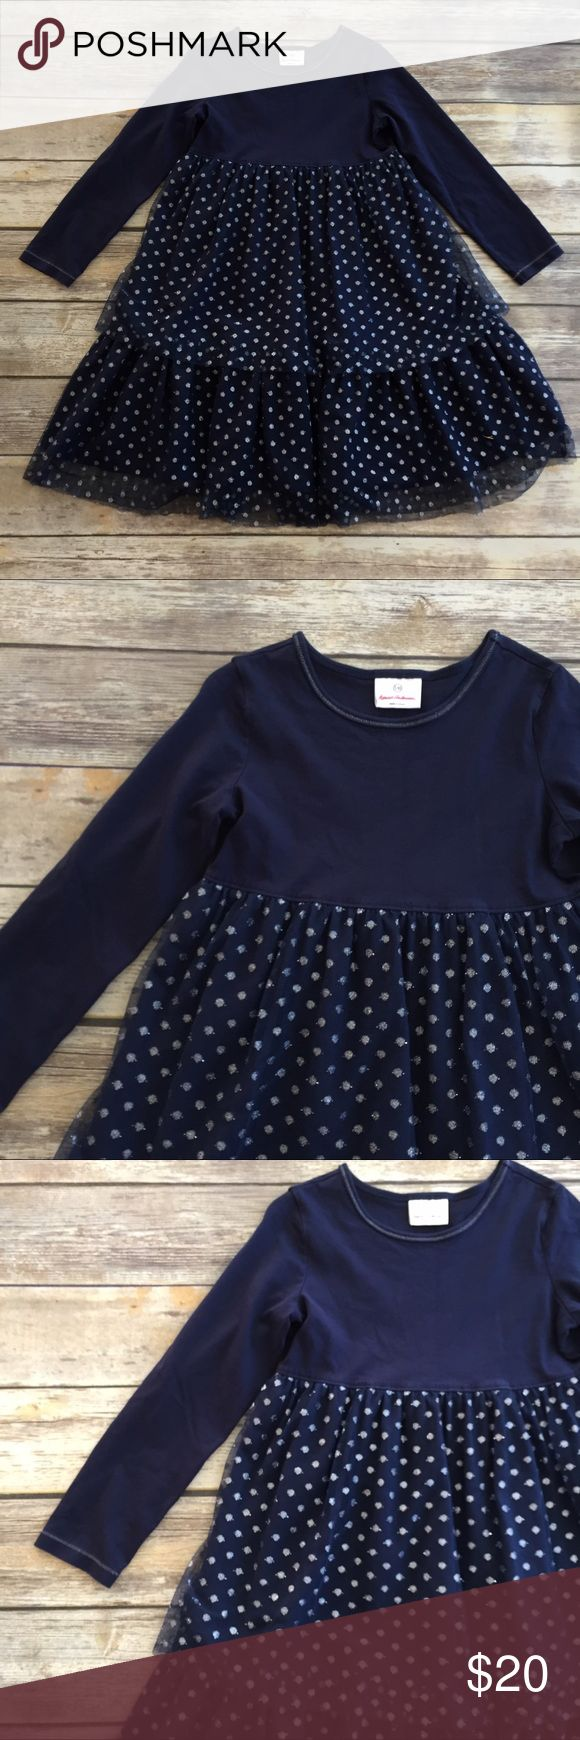 Hanna Andersson Tulle Dress Navy blue long sleeve dress with glittering polkadots tulle Tiered skirt. Excellent condition. Size 130 Hanna Andersson Dresses